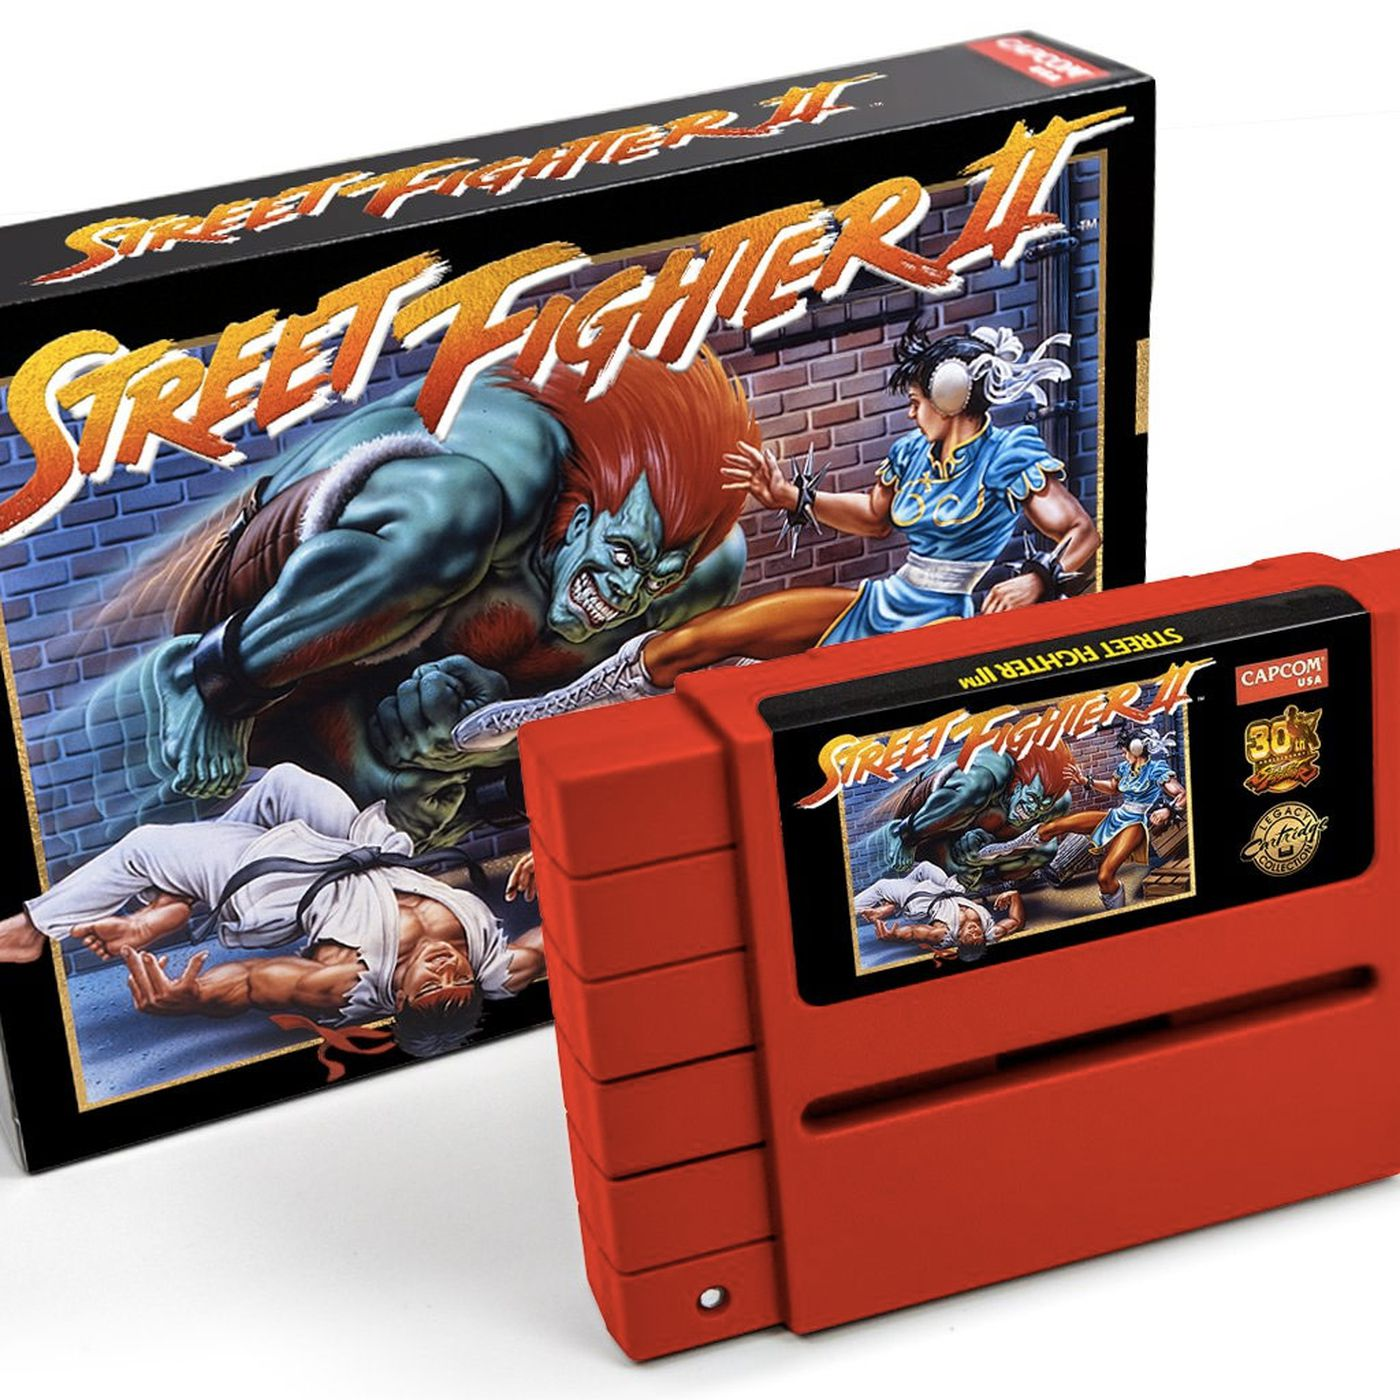 Capcom Re Releasing Street Fighter 2 On Snes Cartridge Polygon